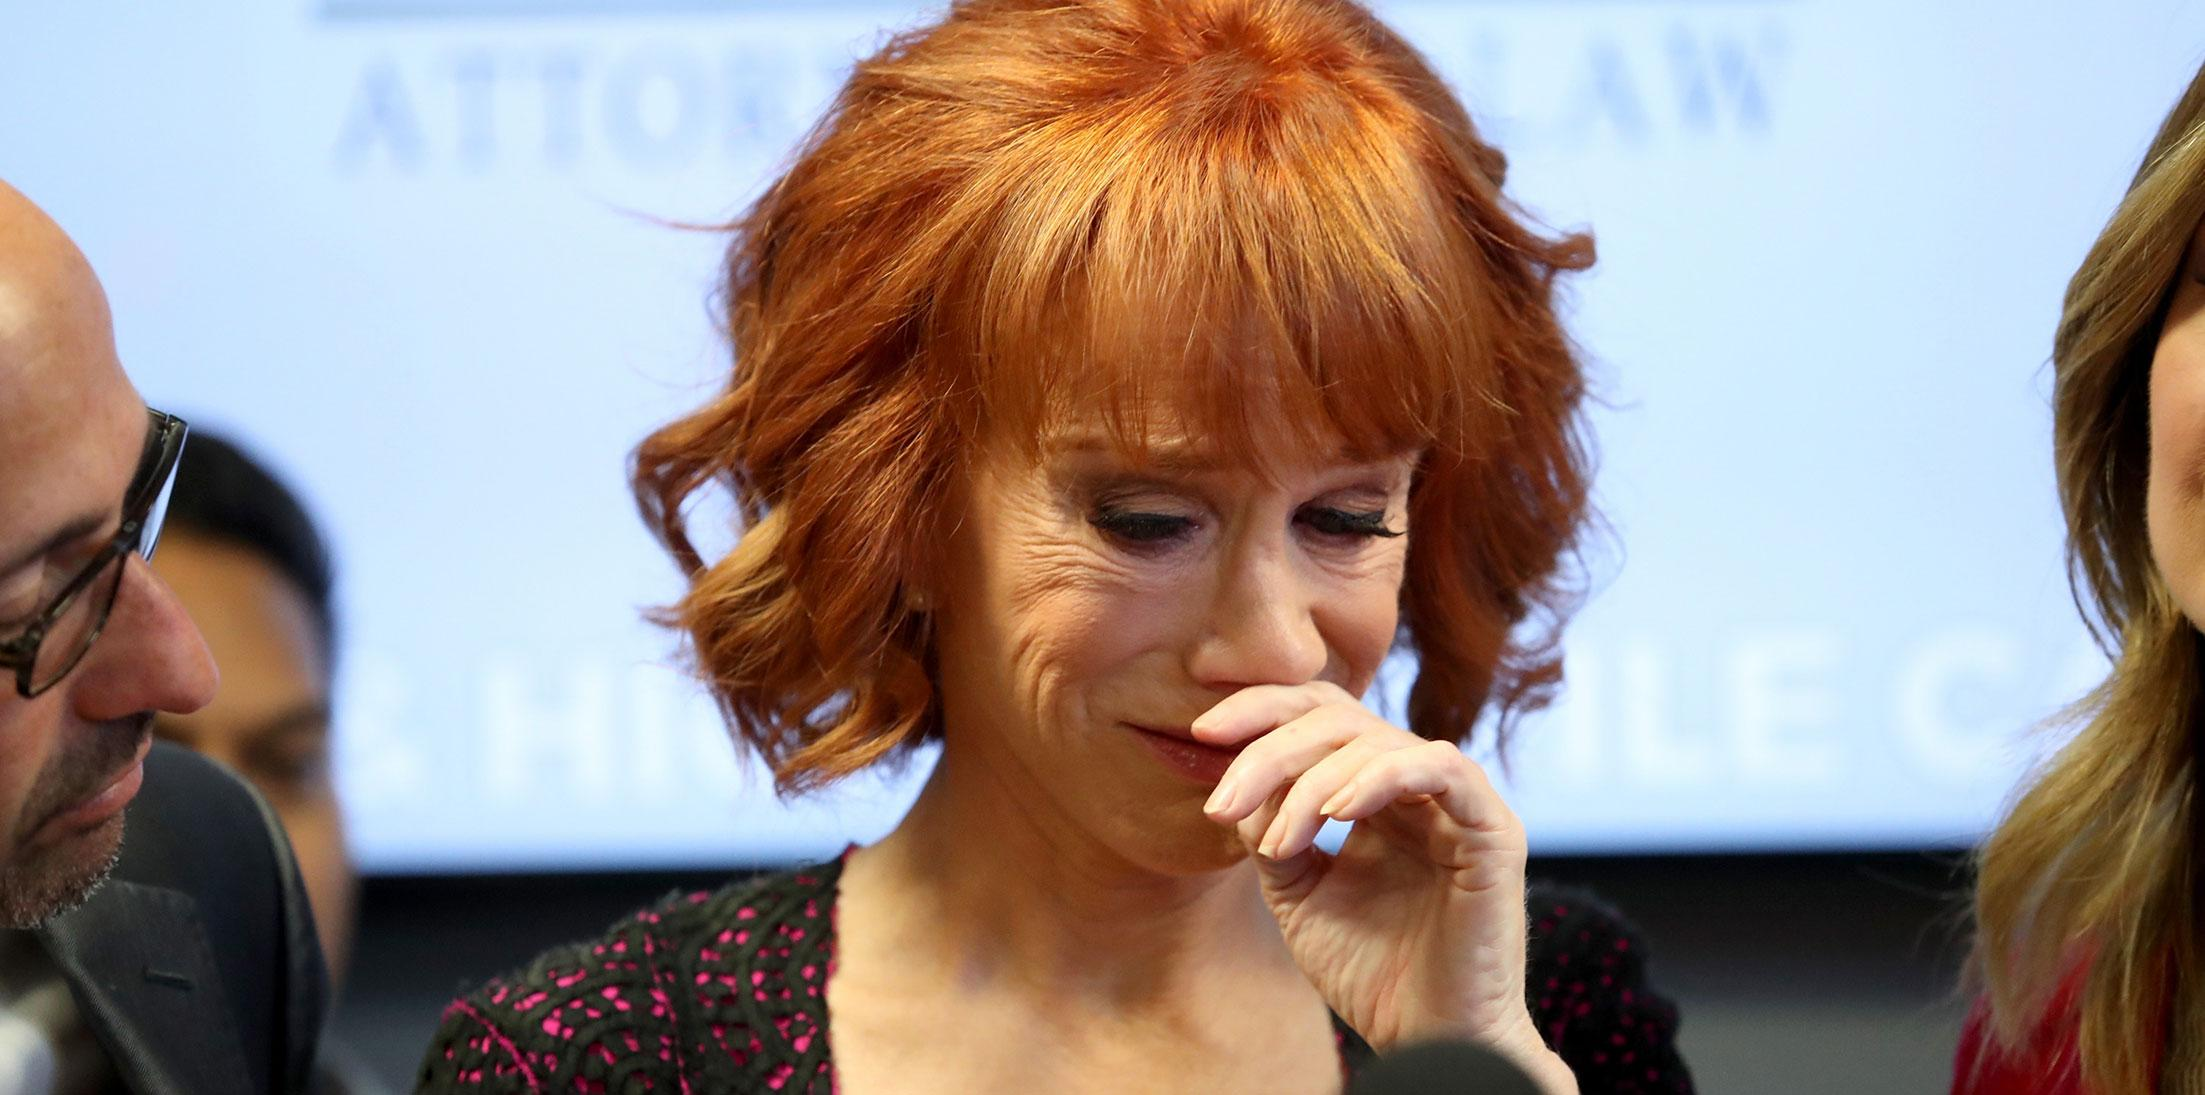 Kathy griffin press conference shocking moments 03